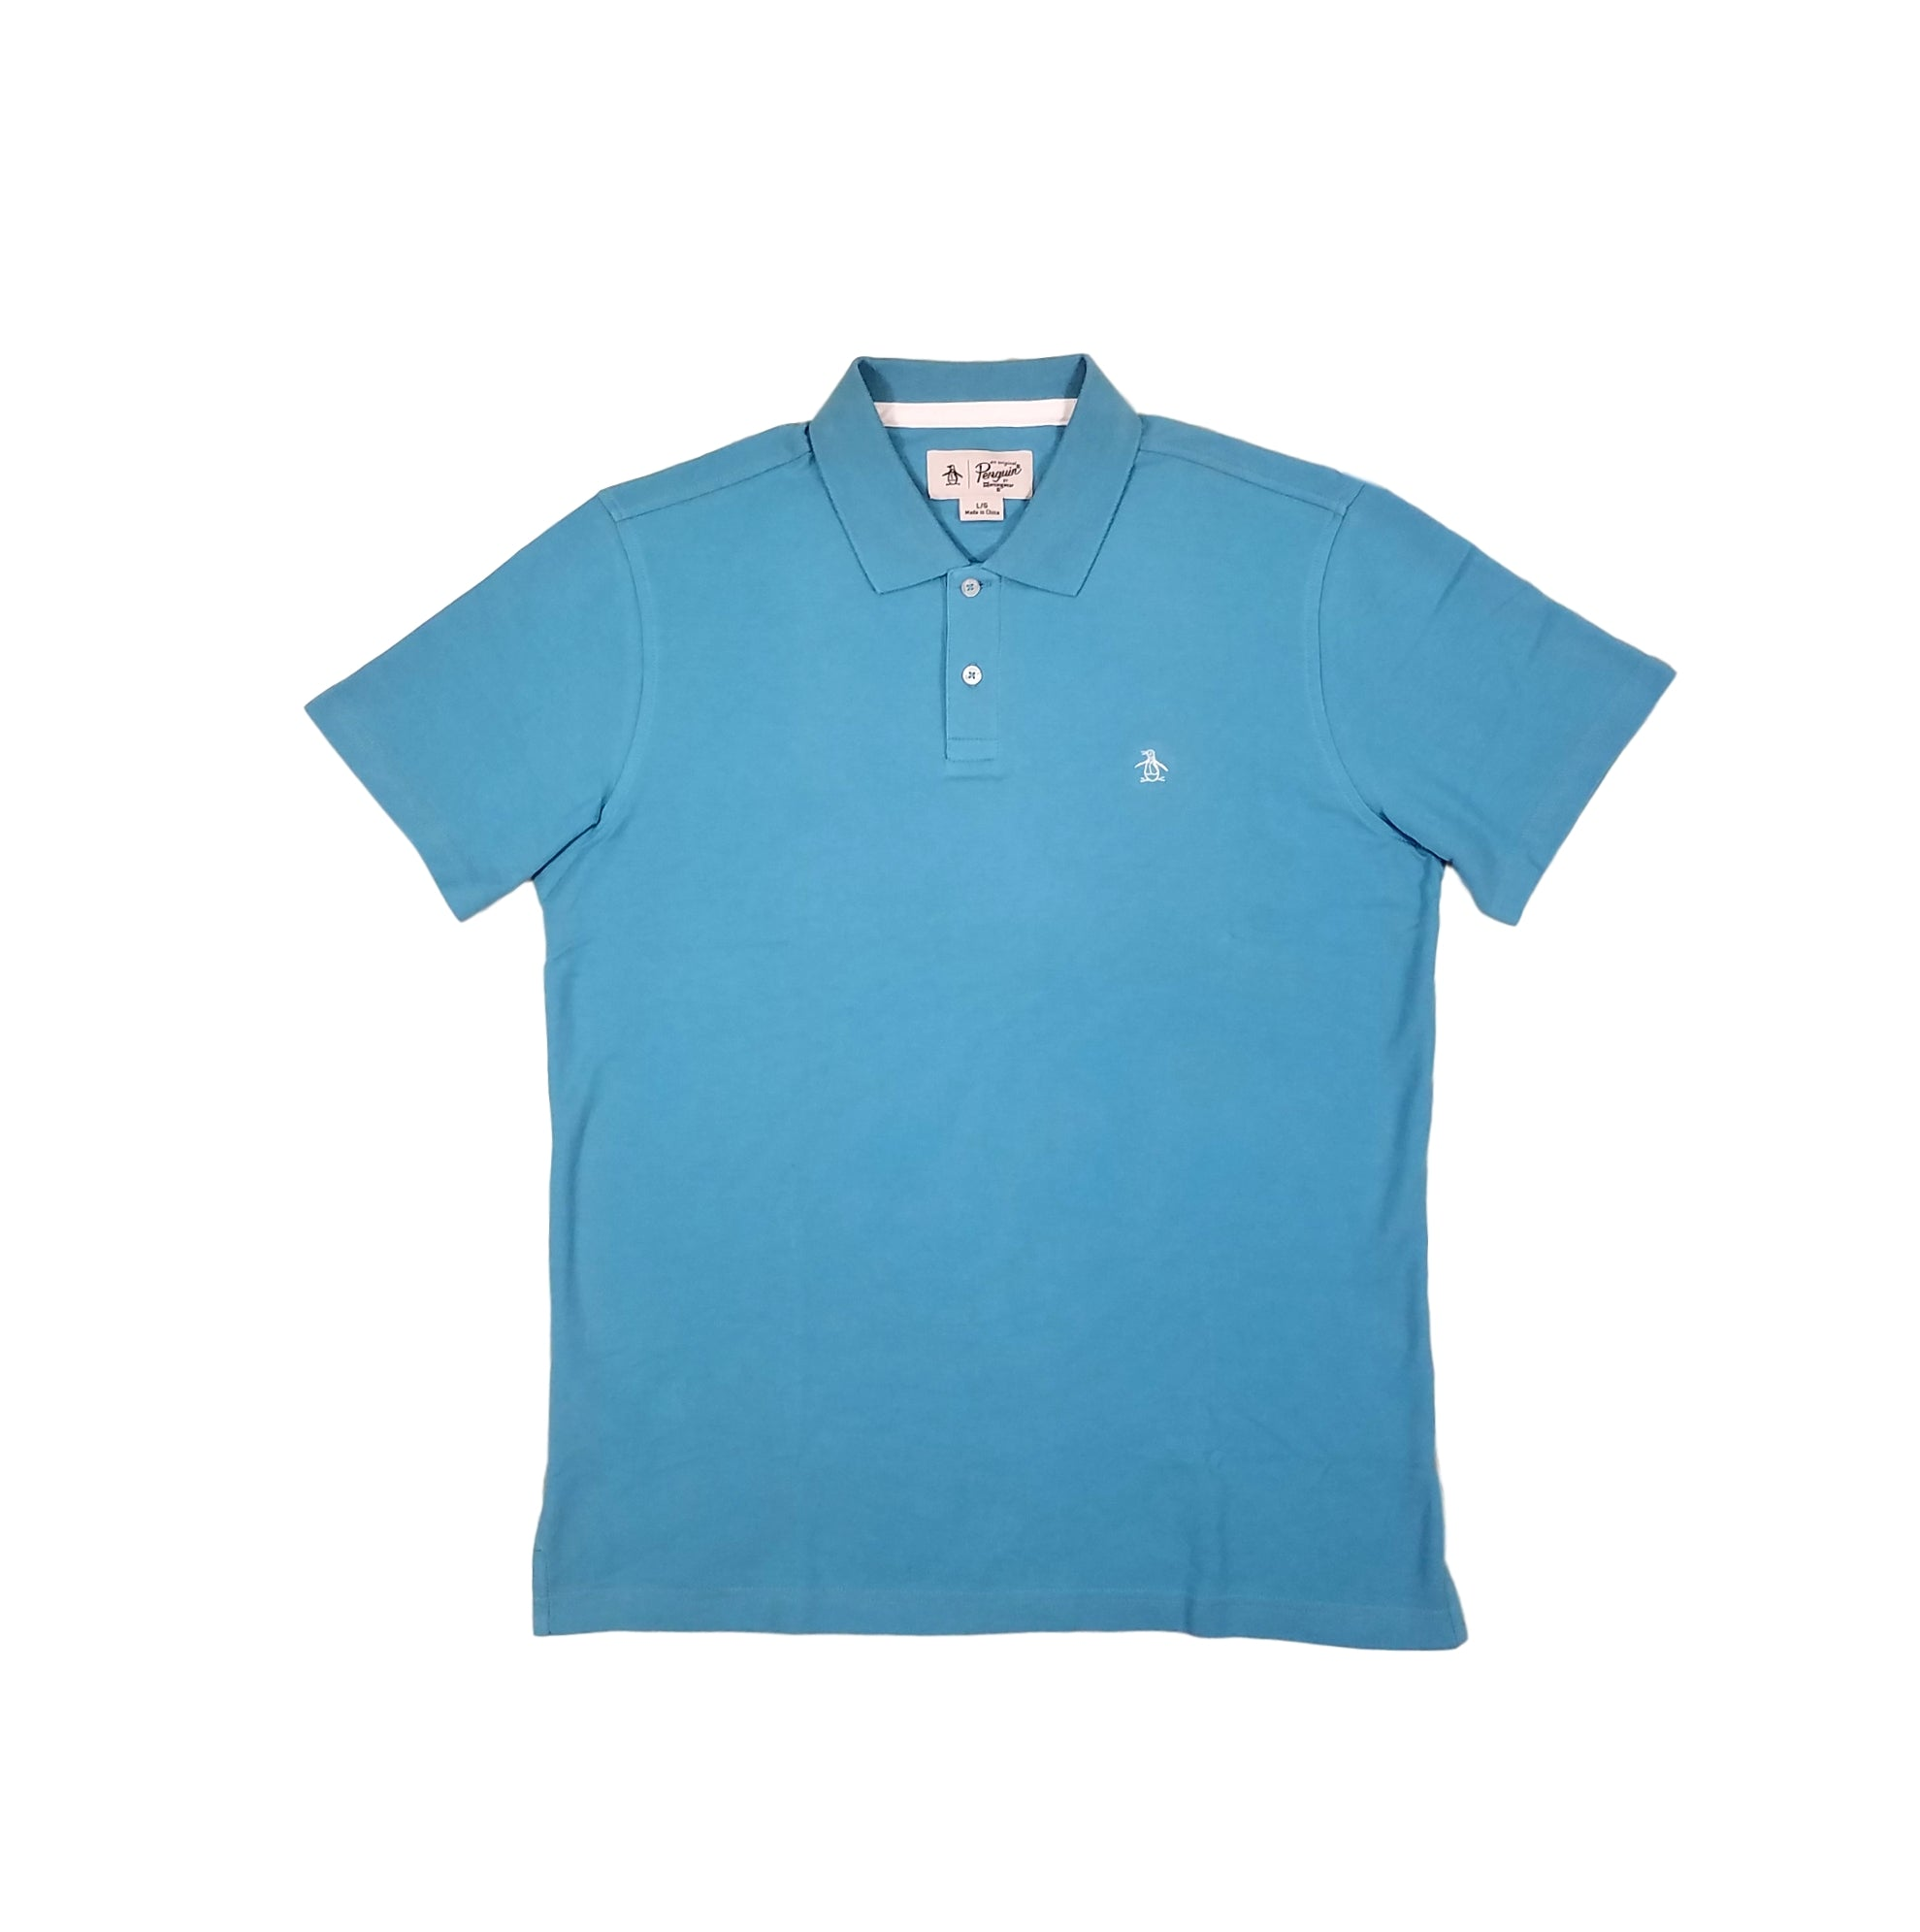 Penguin Men's Plain Polo OCKF9011-484